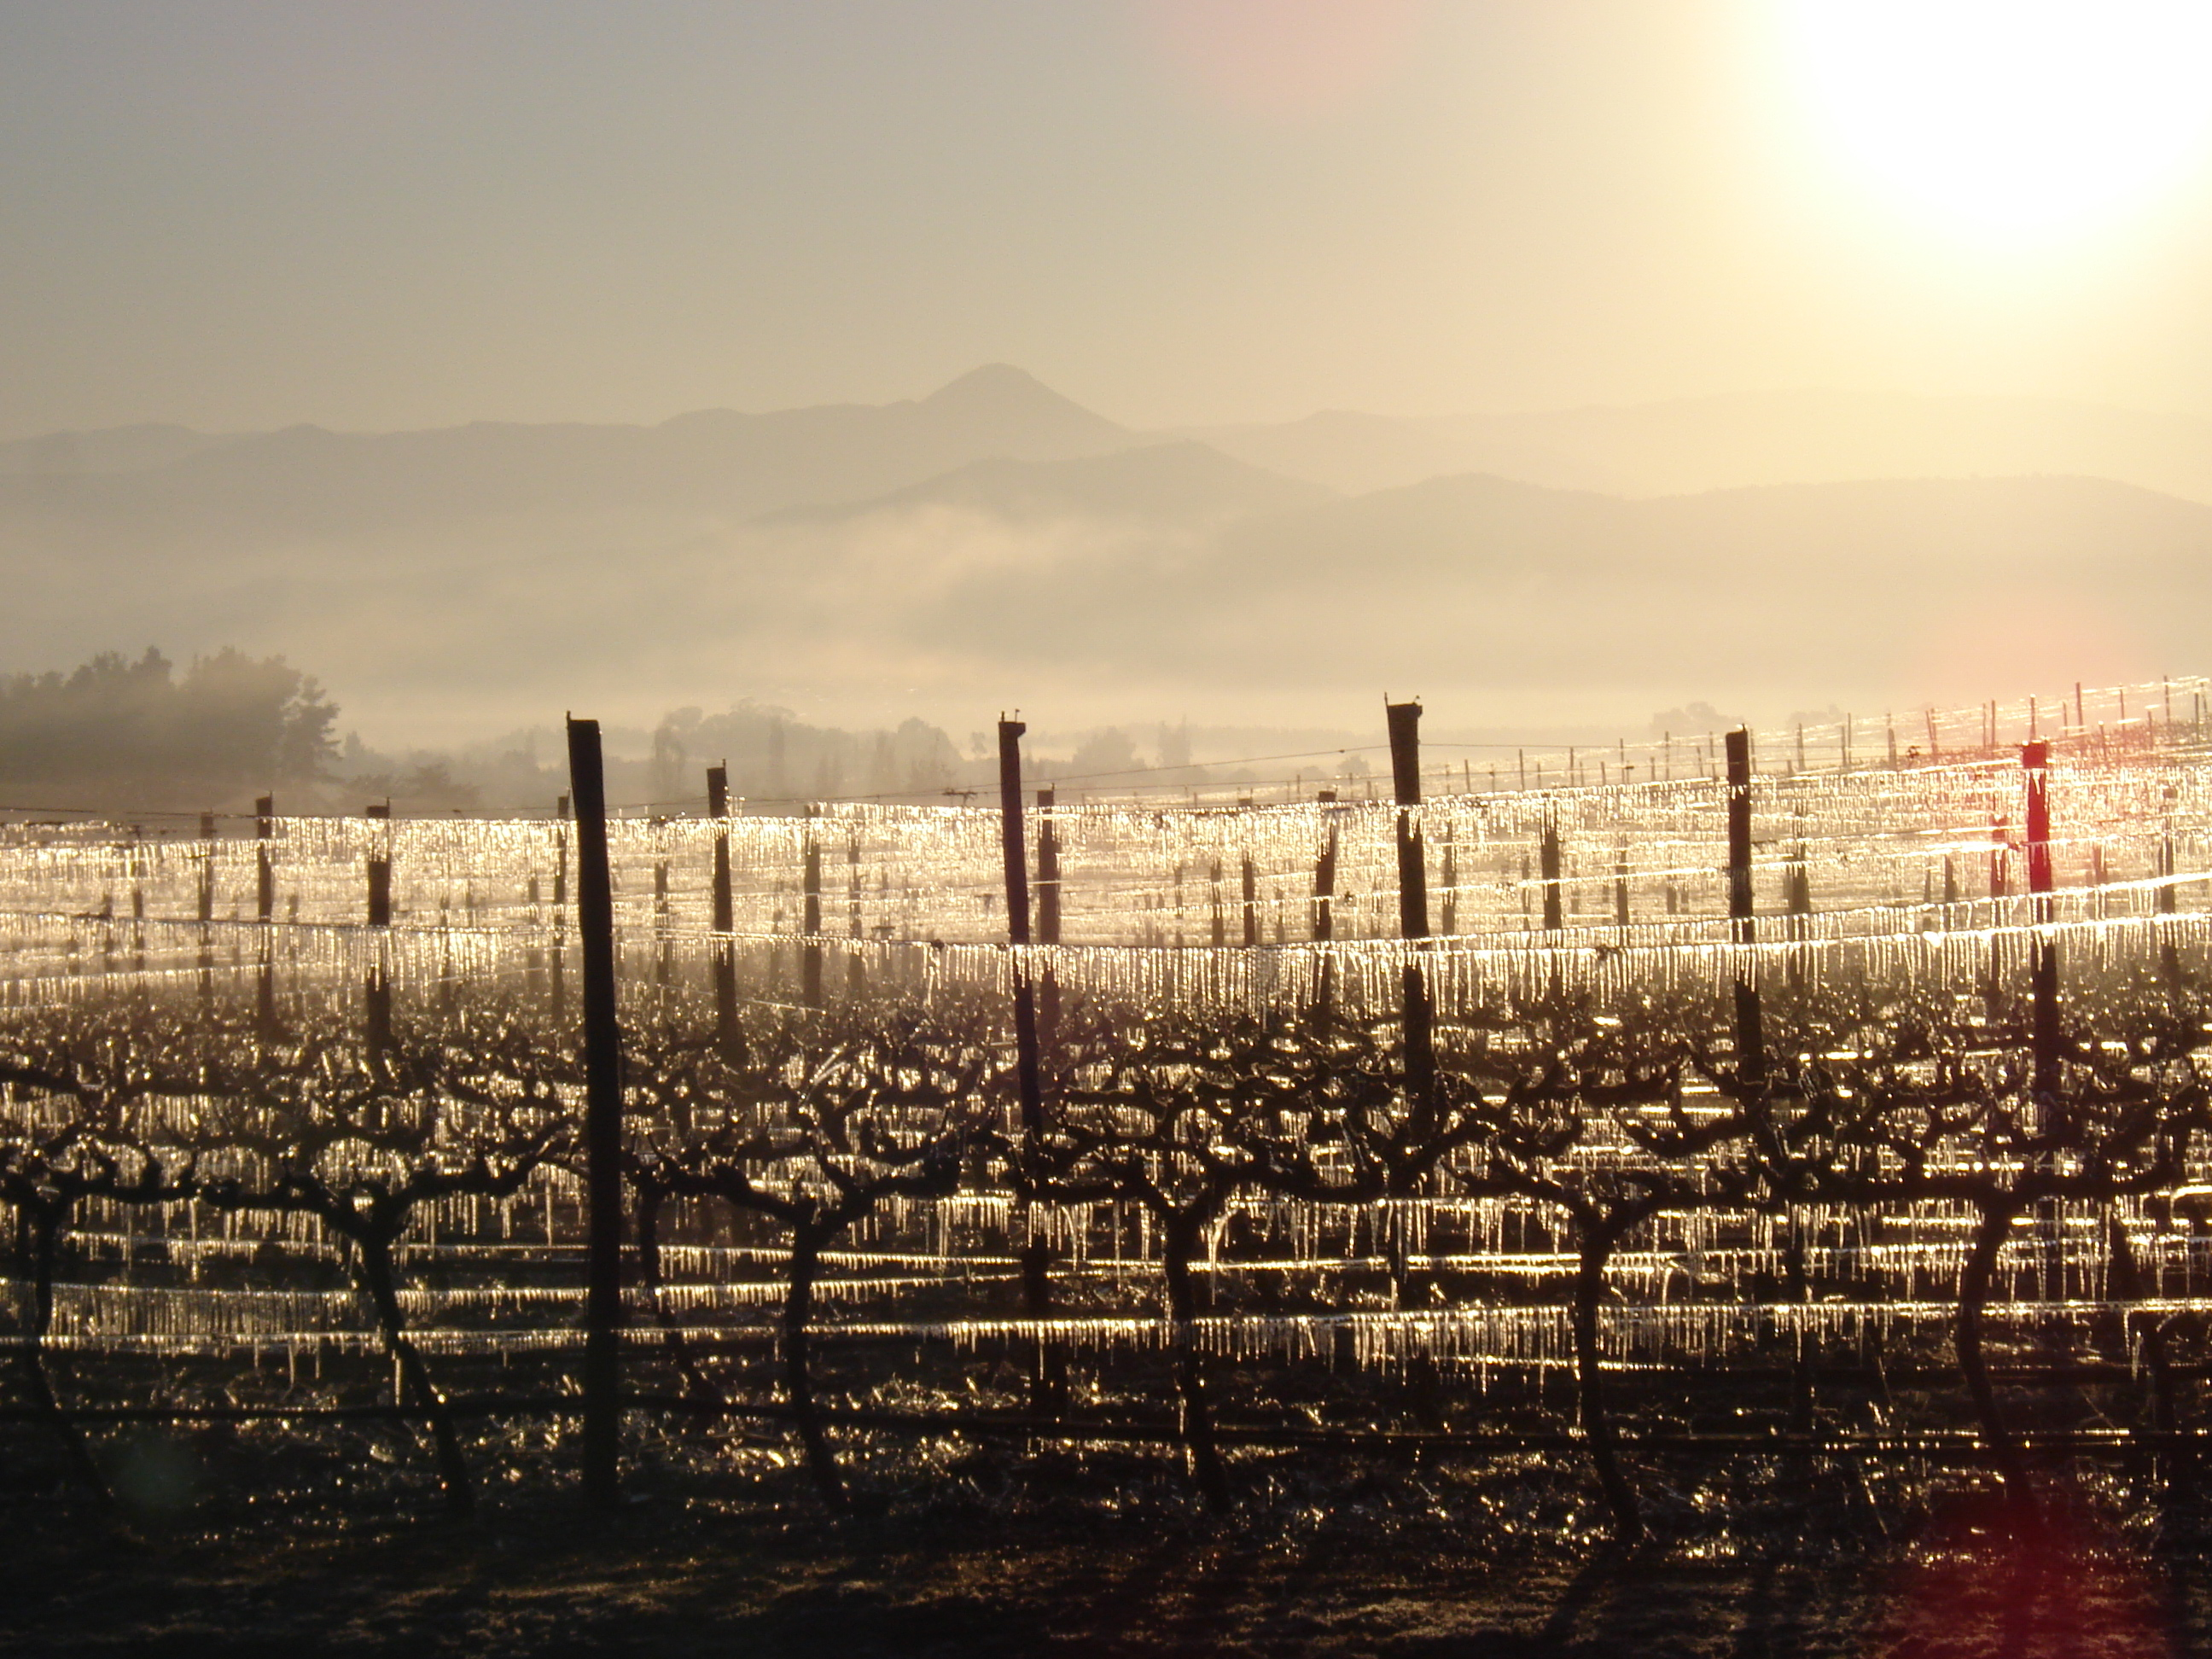 The sun warms the frozen vines.